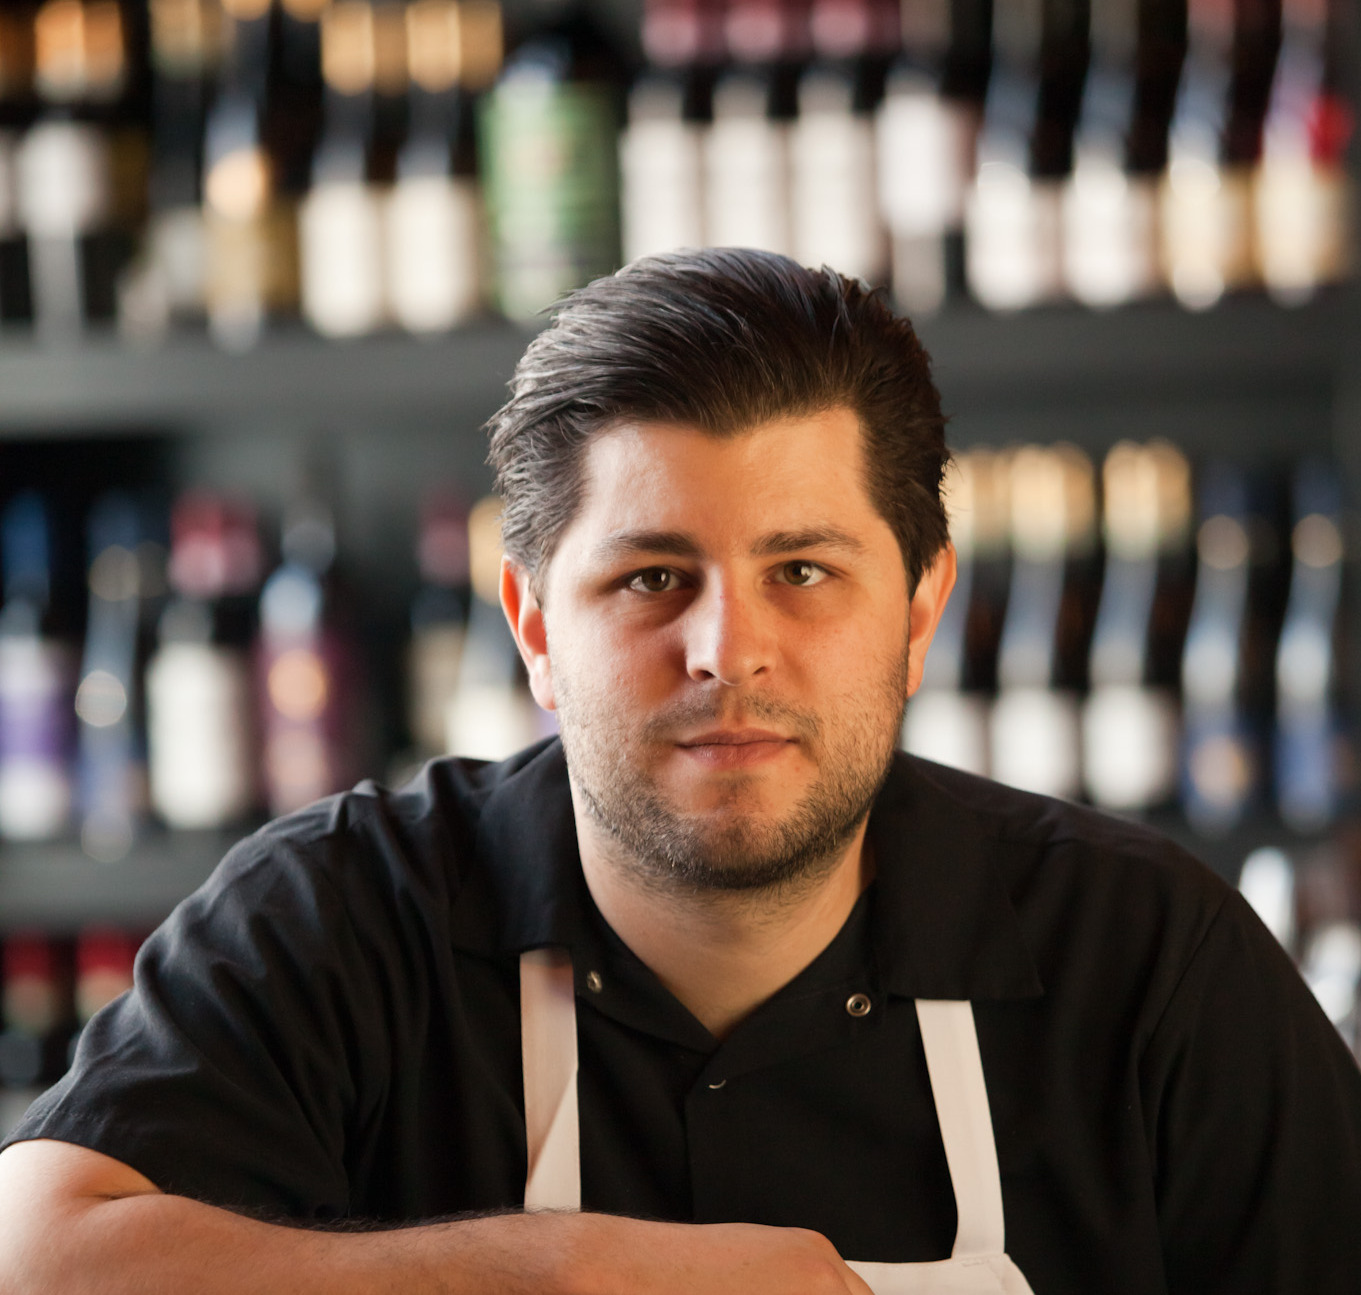 Chef Chad Colby in Los Angeles